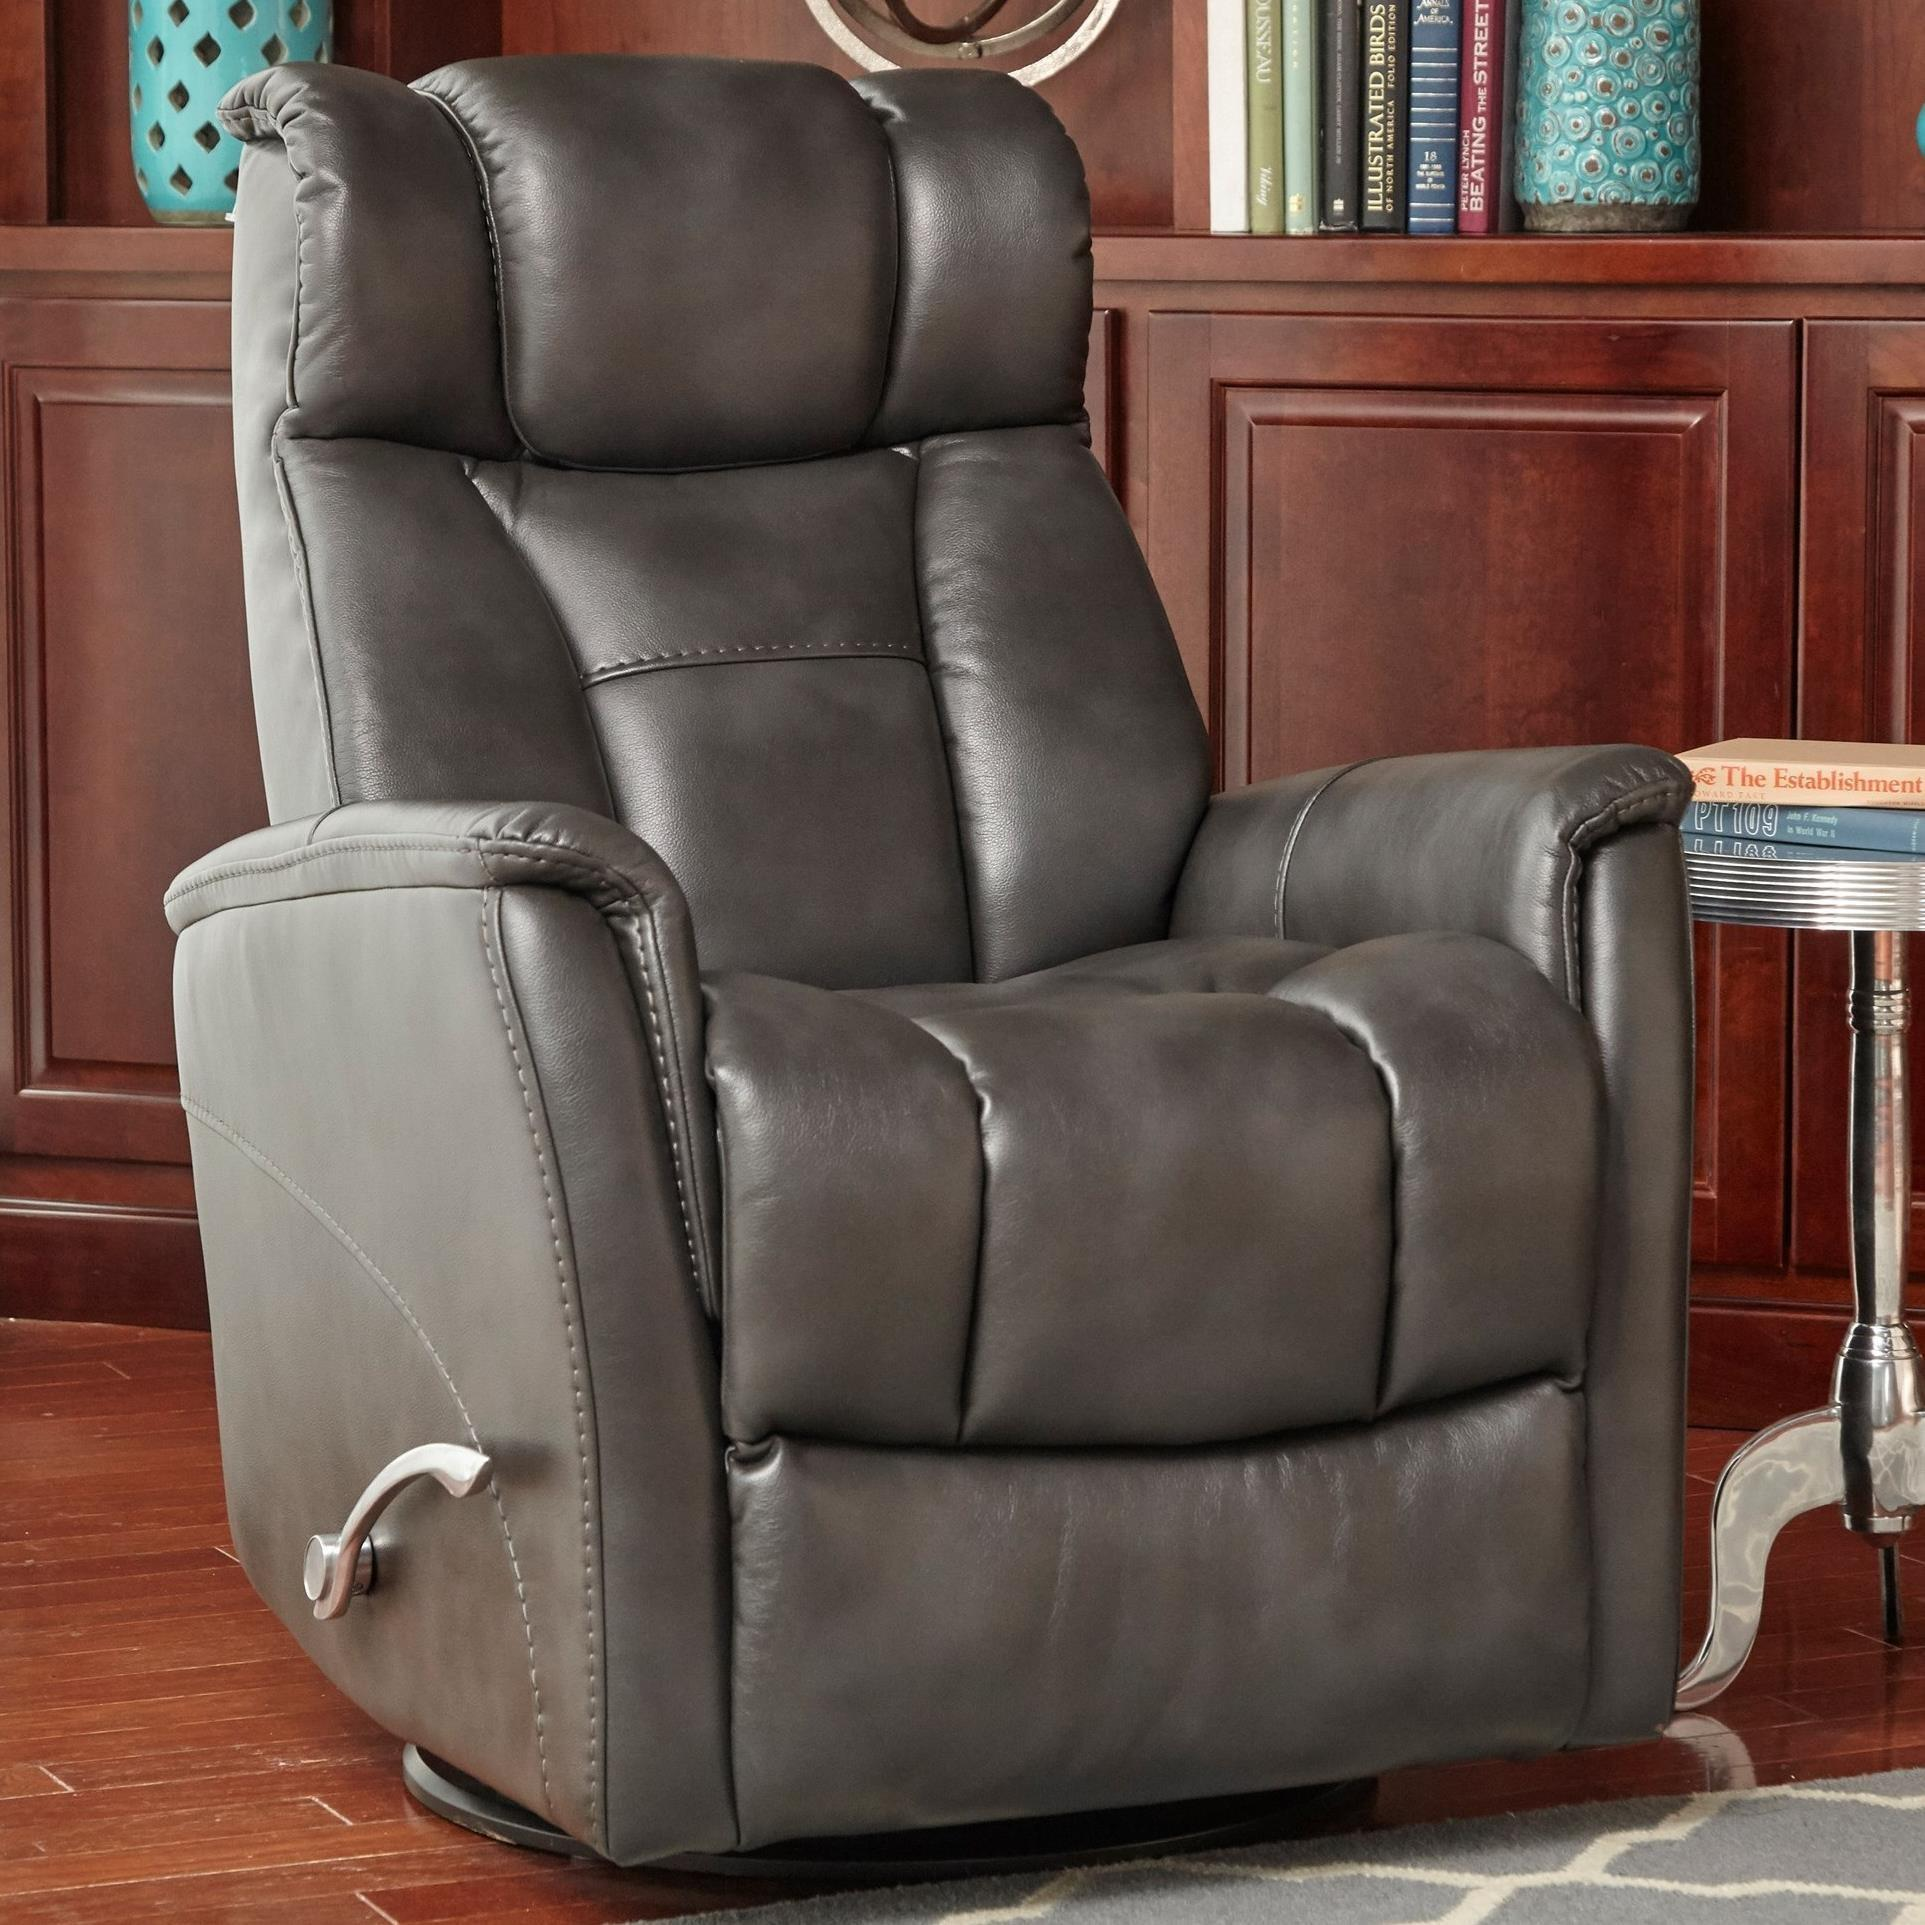 living recliners for in furniture chocolate sets tornado mor room rocker chair recliner less